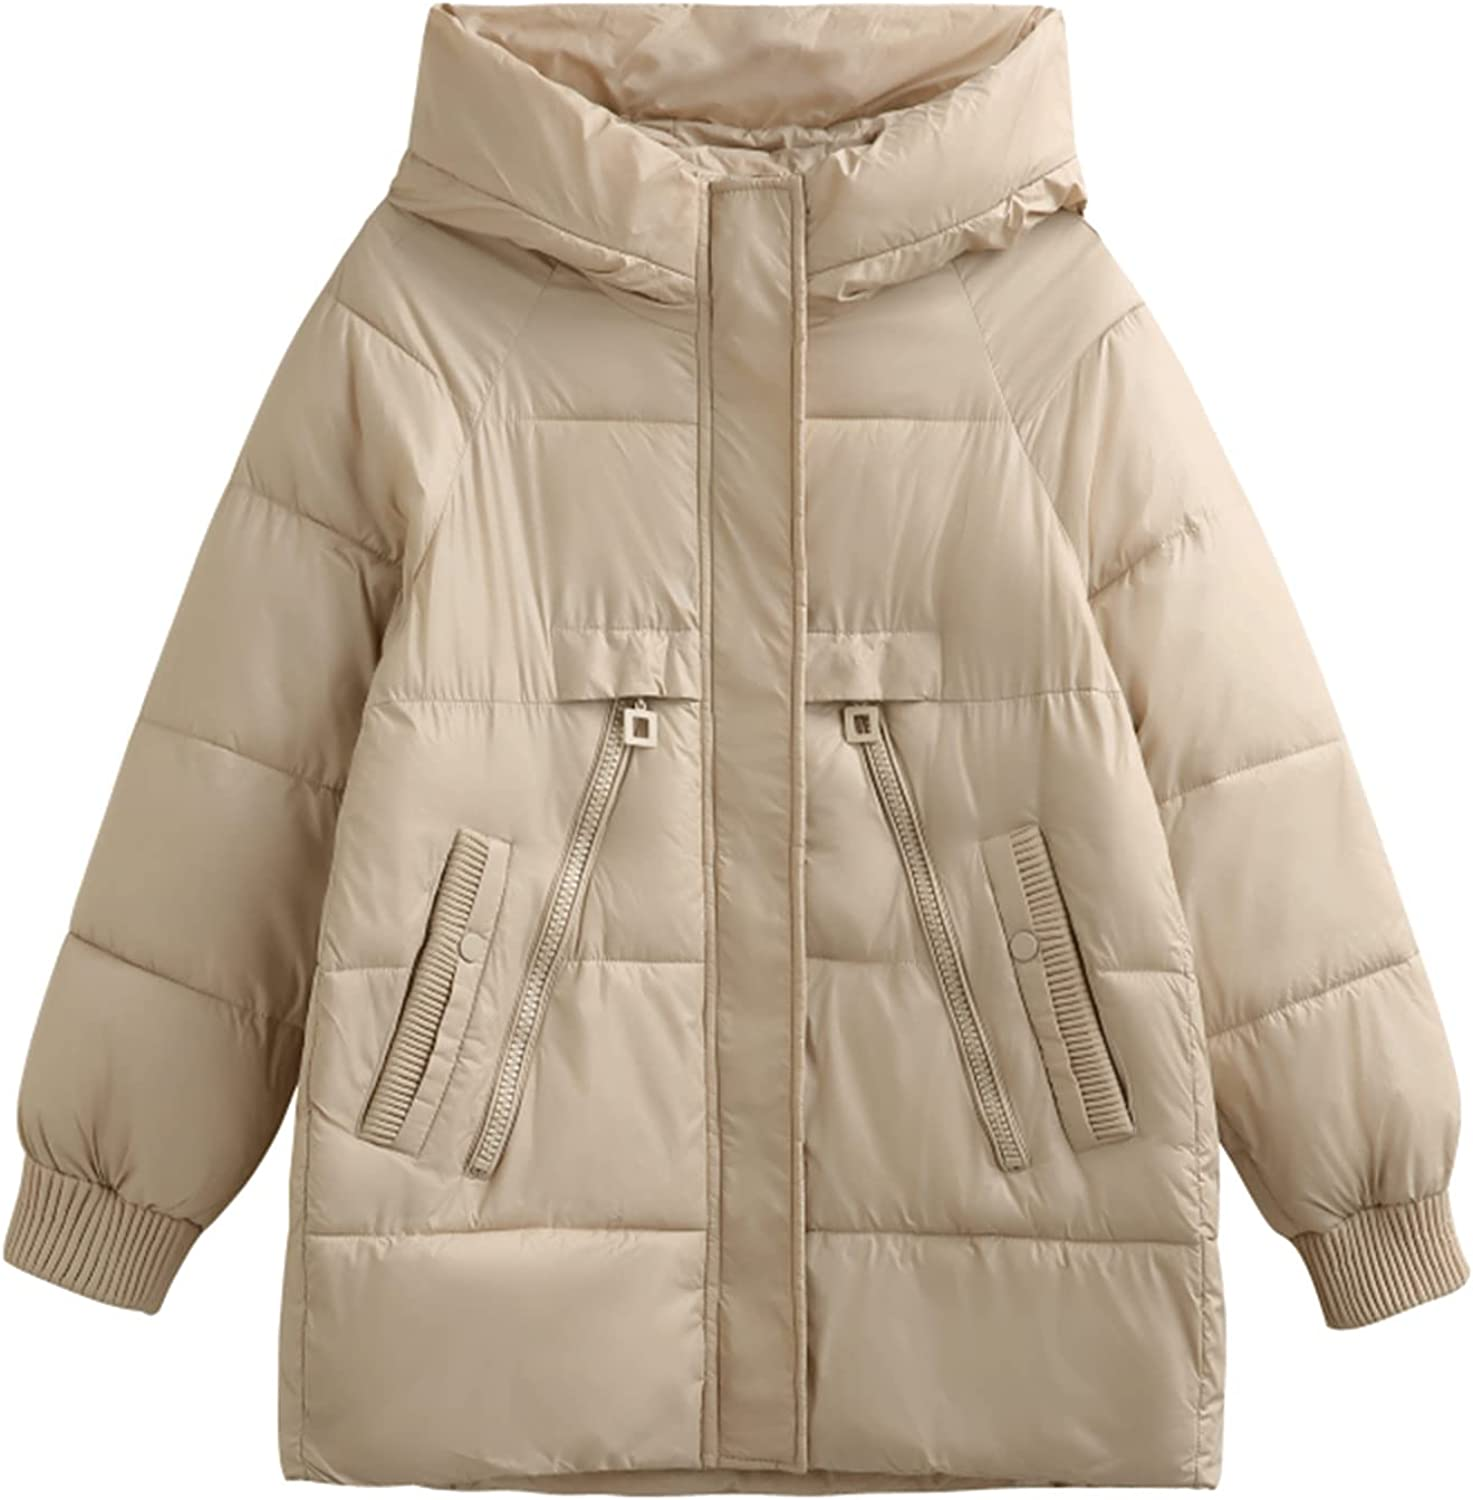 ERTG Womens Cotton Jacket Full Zip Winter Thickened Warm Coat Thicken Quilted with Pocket Hooded Coat Cotton Jacke